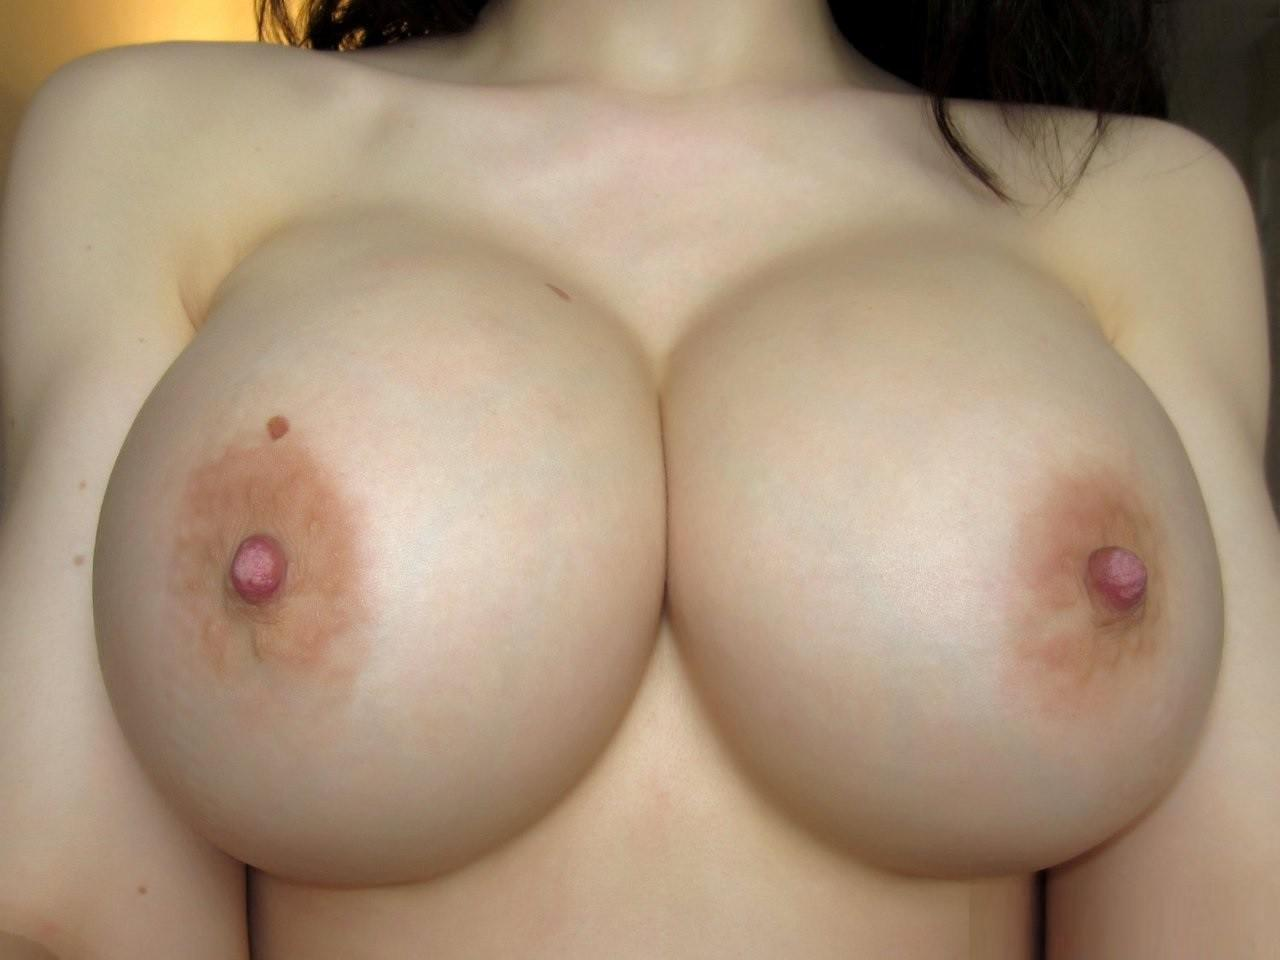 ☘️ Wanna Fuck Me🔰I'm Very Hungry For Oral Sex🔰Meet & Fuck🍀